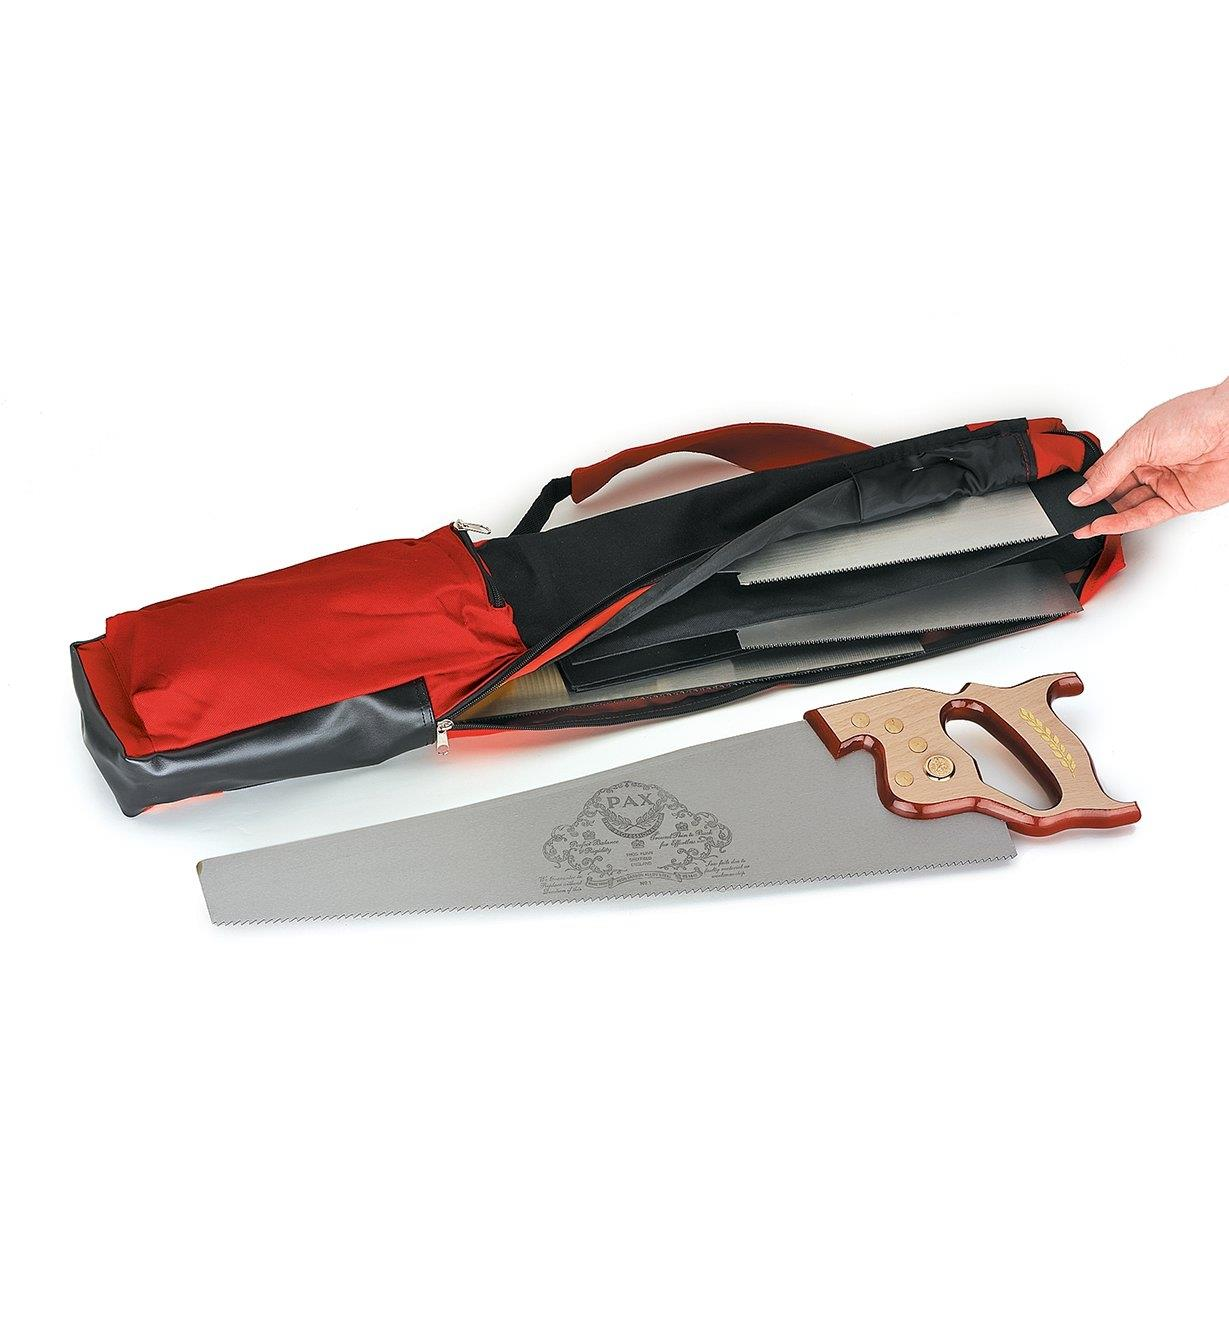 Storing saws inside the Carpenter's Saw Bag